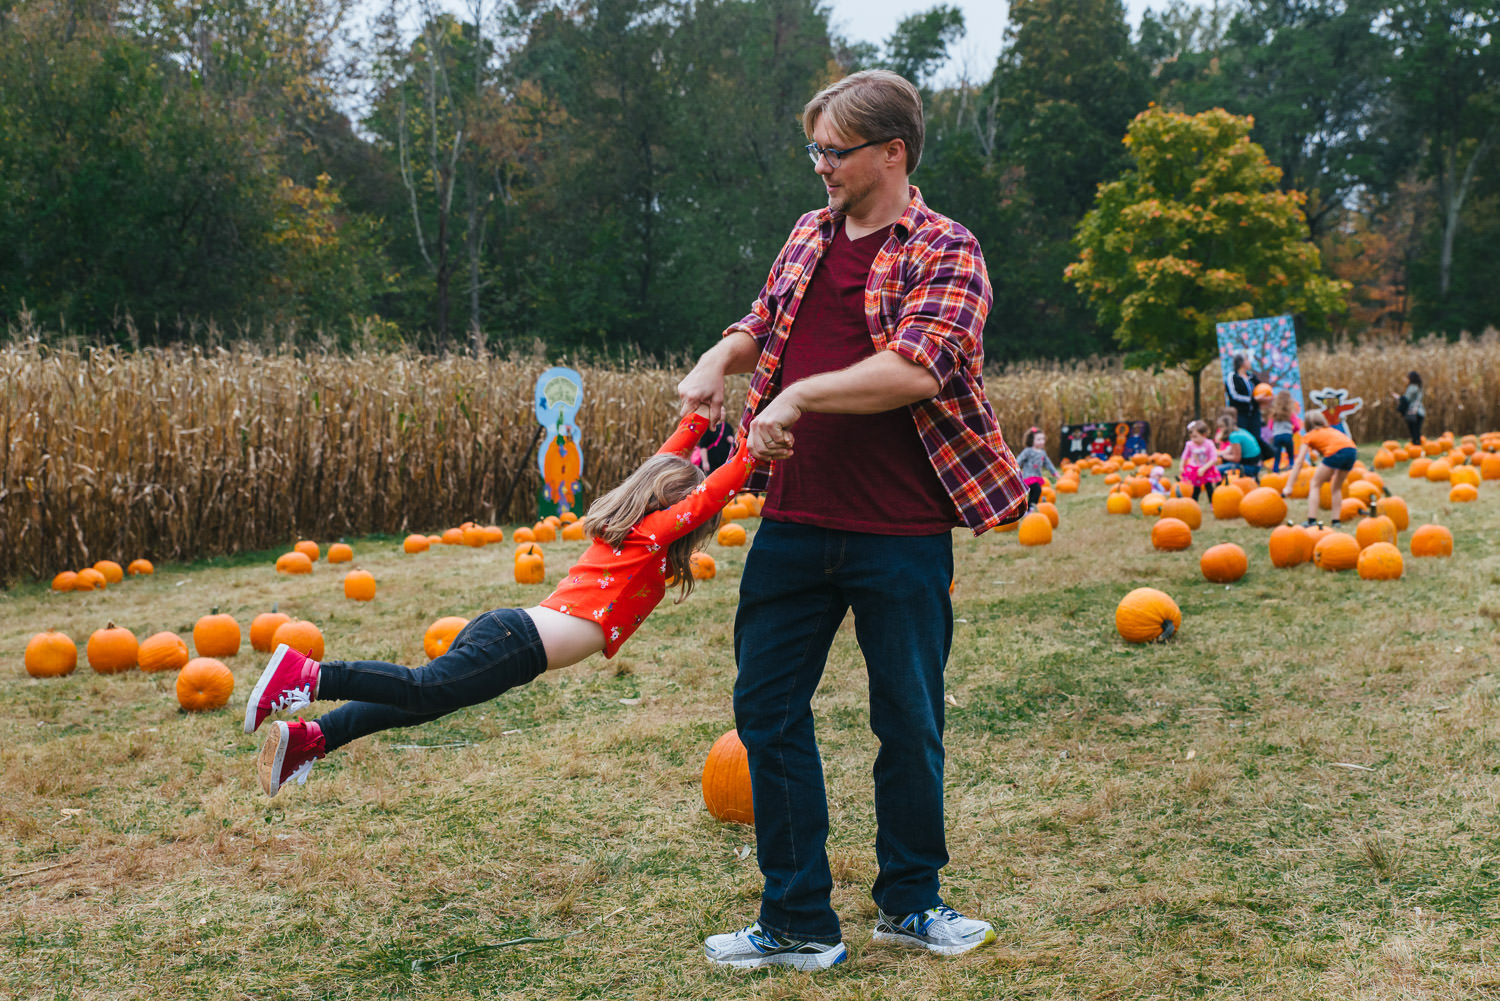 A man swings his daughter around in a pumpkin patch.